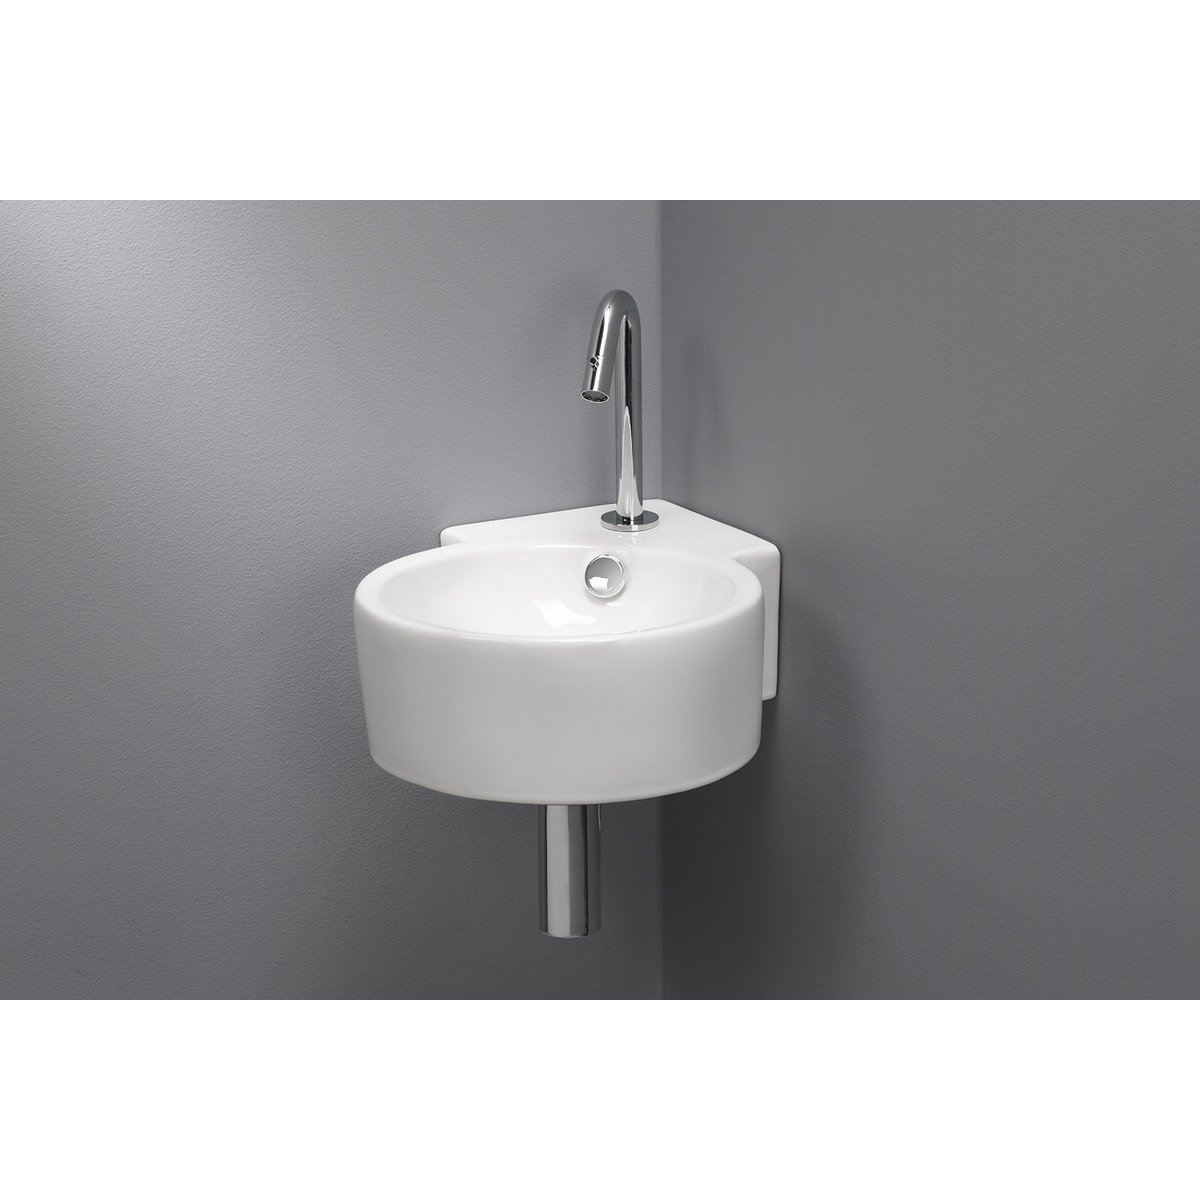 Wc D'angle Royal Plaza Capella Lavabo Wc D 39angle 44 5x31x16cm Blanc